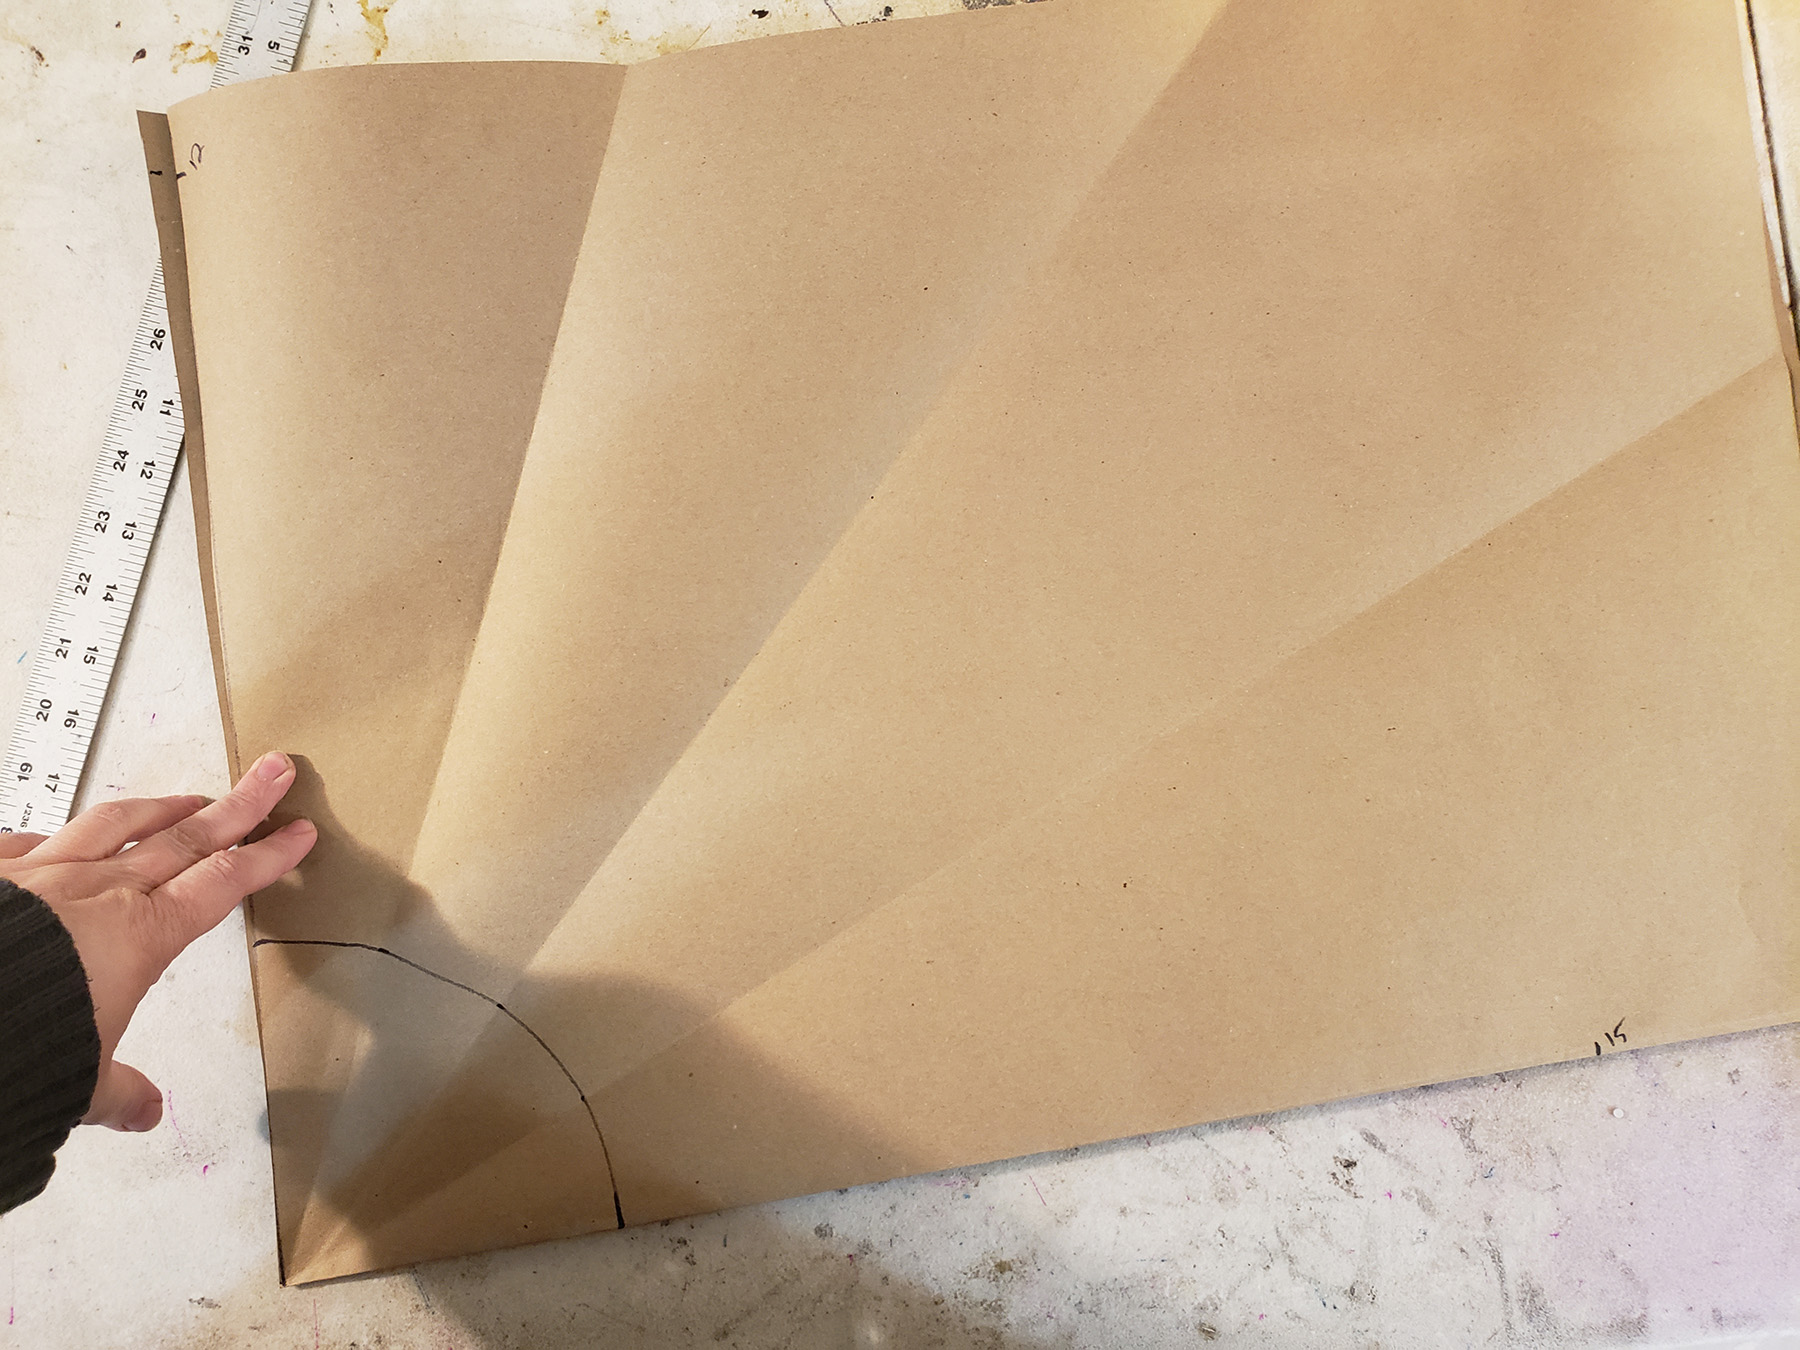 A large piece of brown craft paper has several fold lines radiating out from a corner, and a black semi circle drawn at that corner.